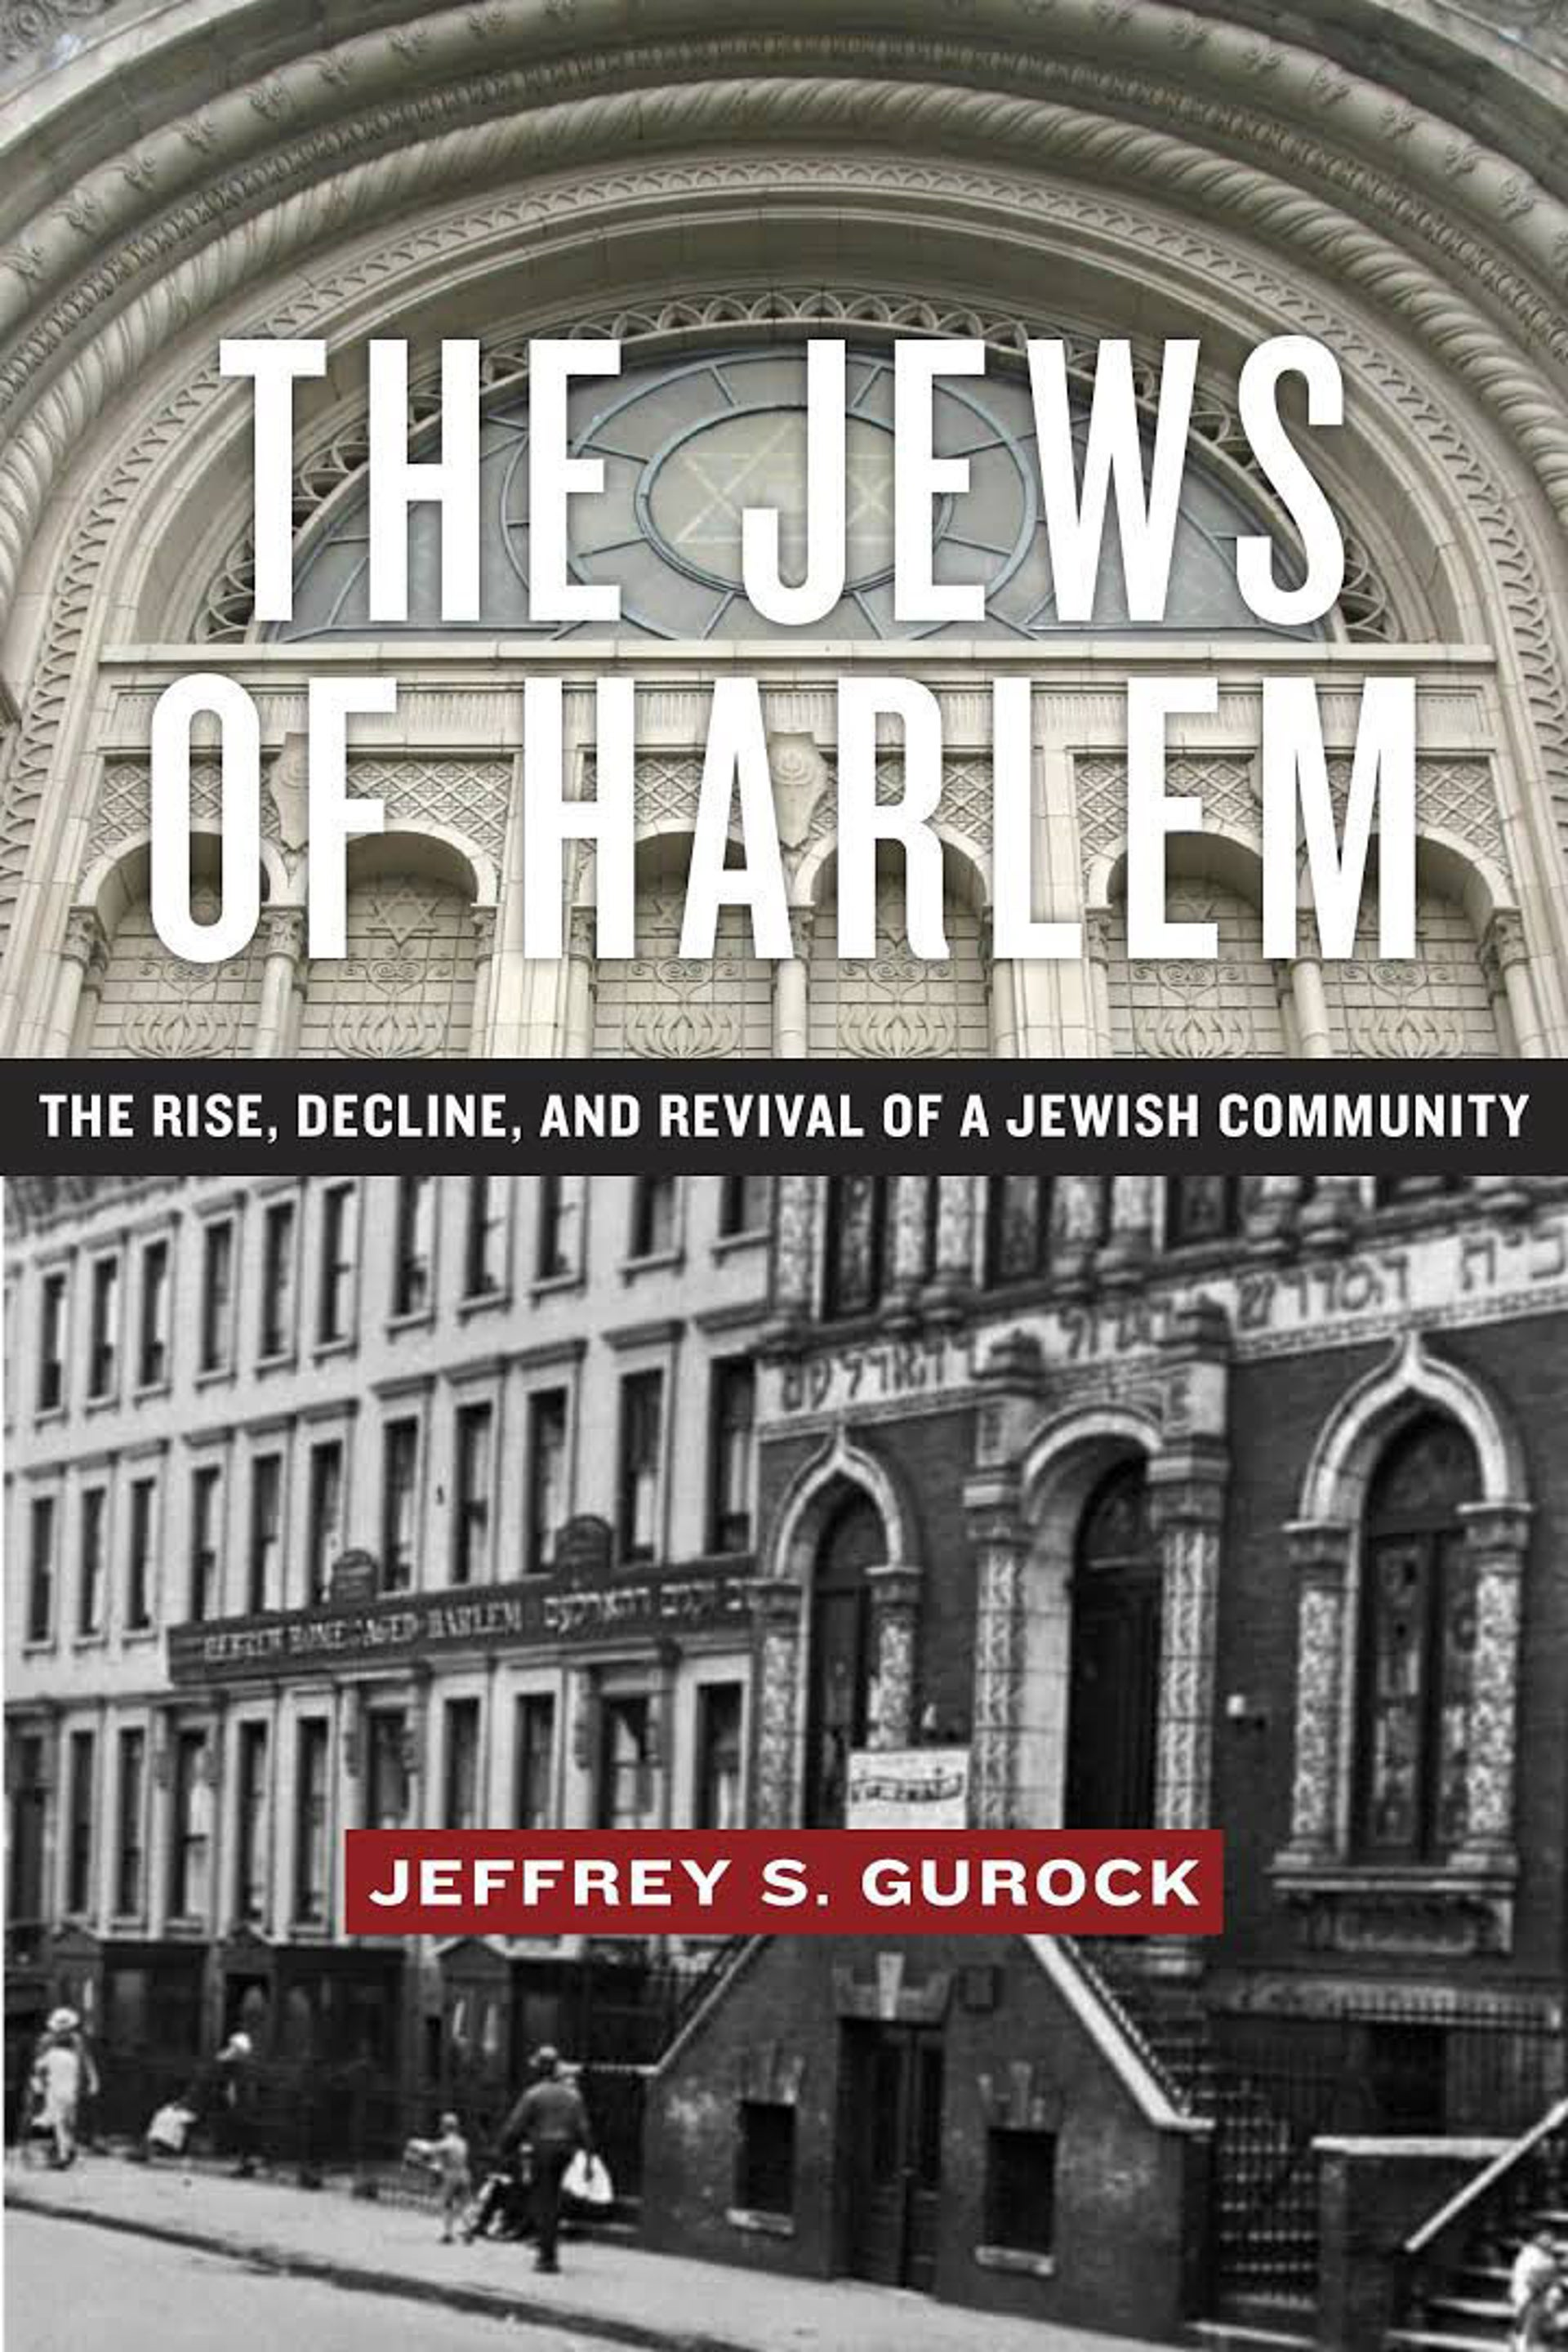 The cover of 'The Jews of Harlem'.